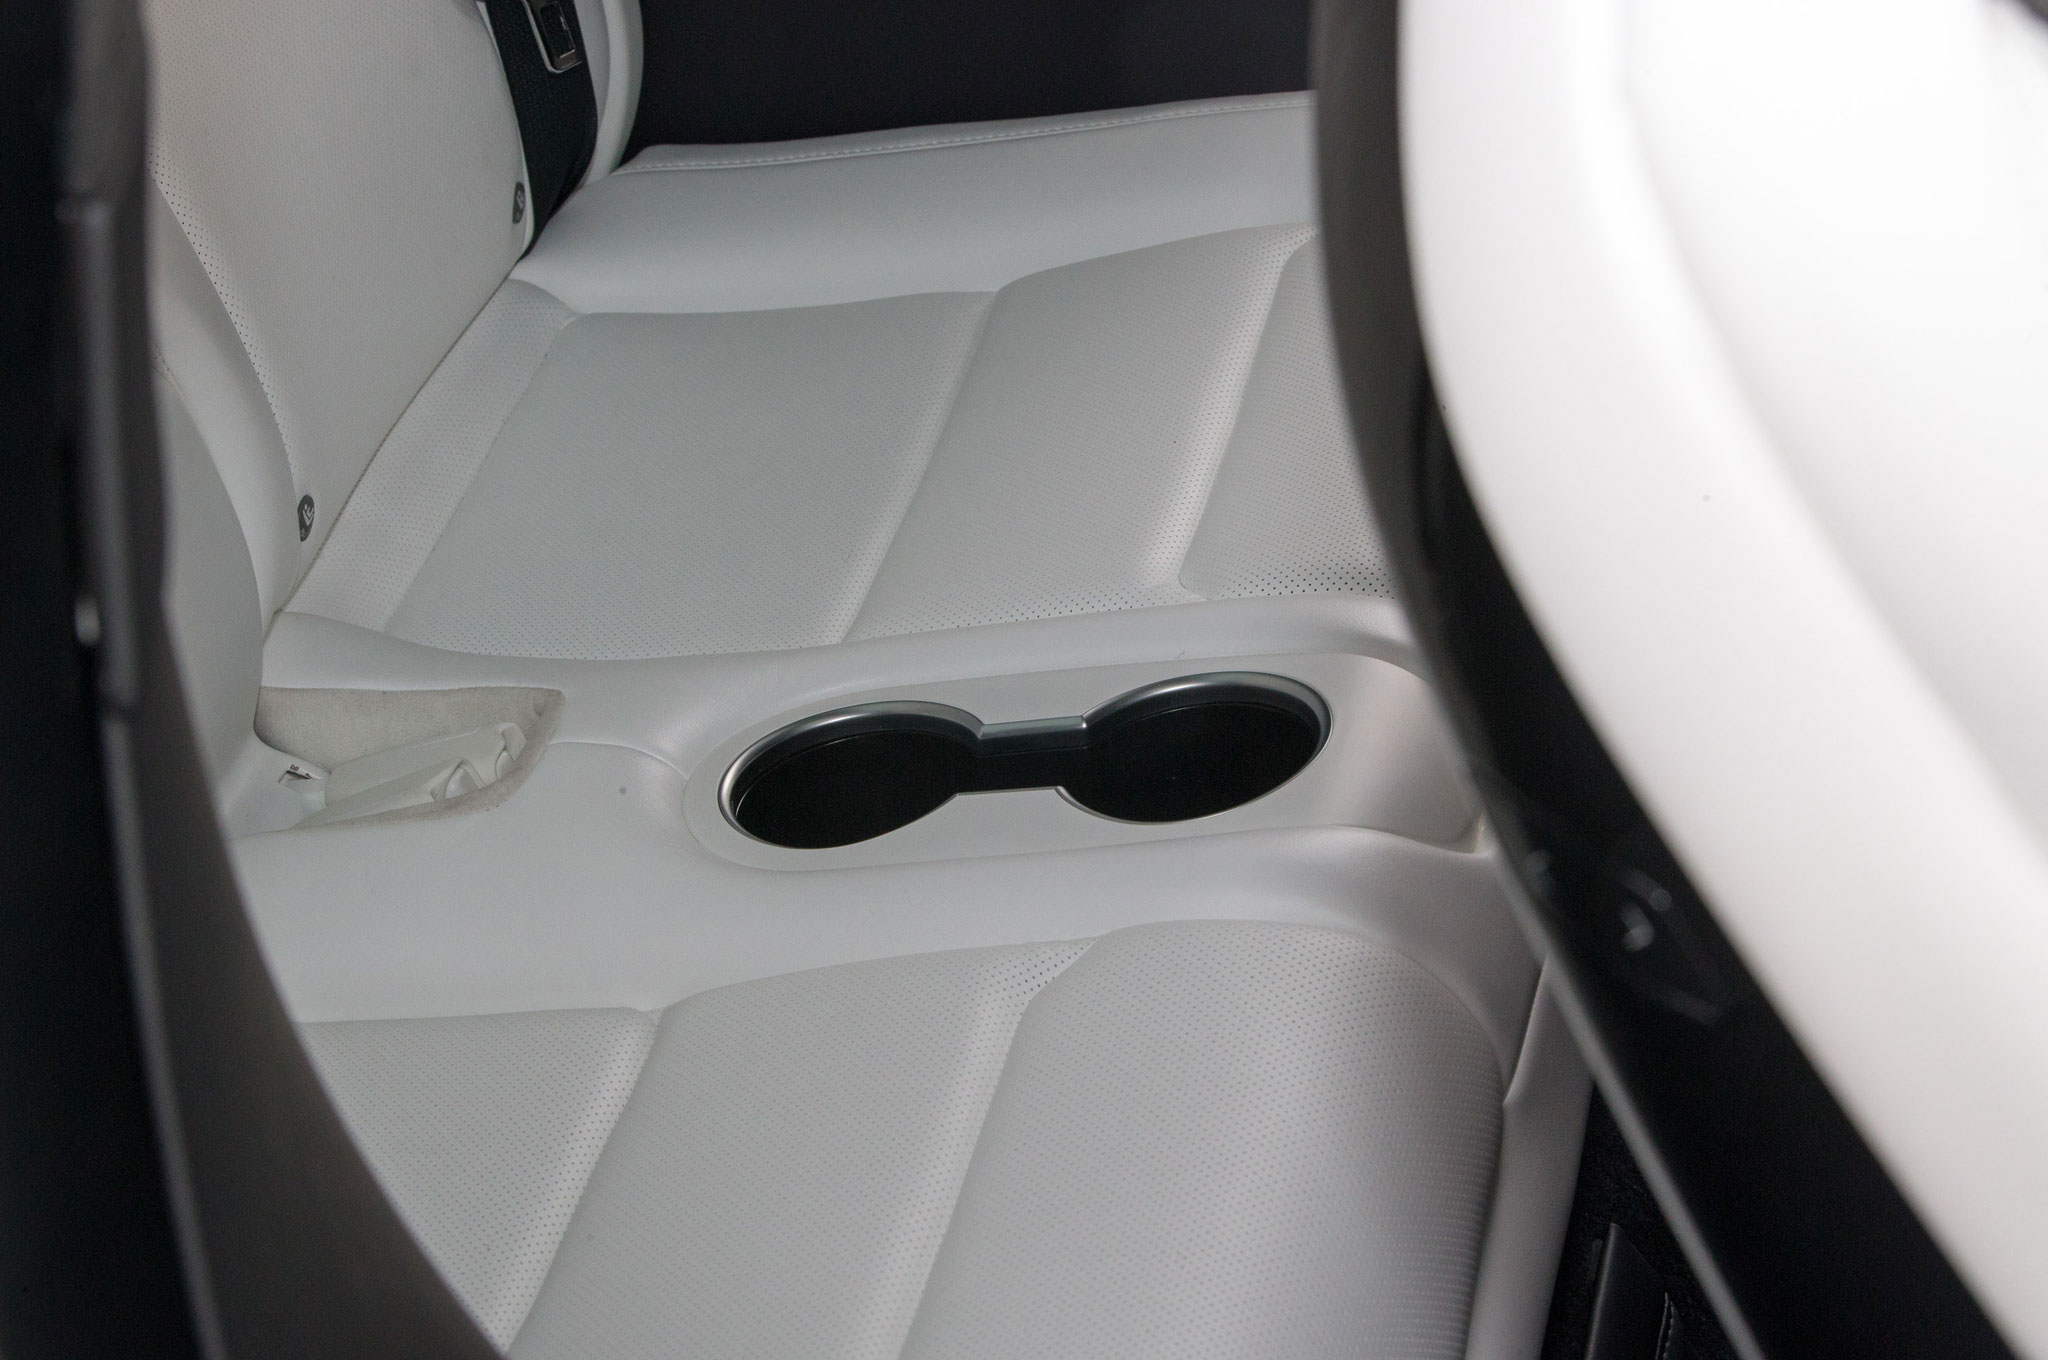 2016-tesla-model-x-interior-cupholders-in-seats.jpg